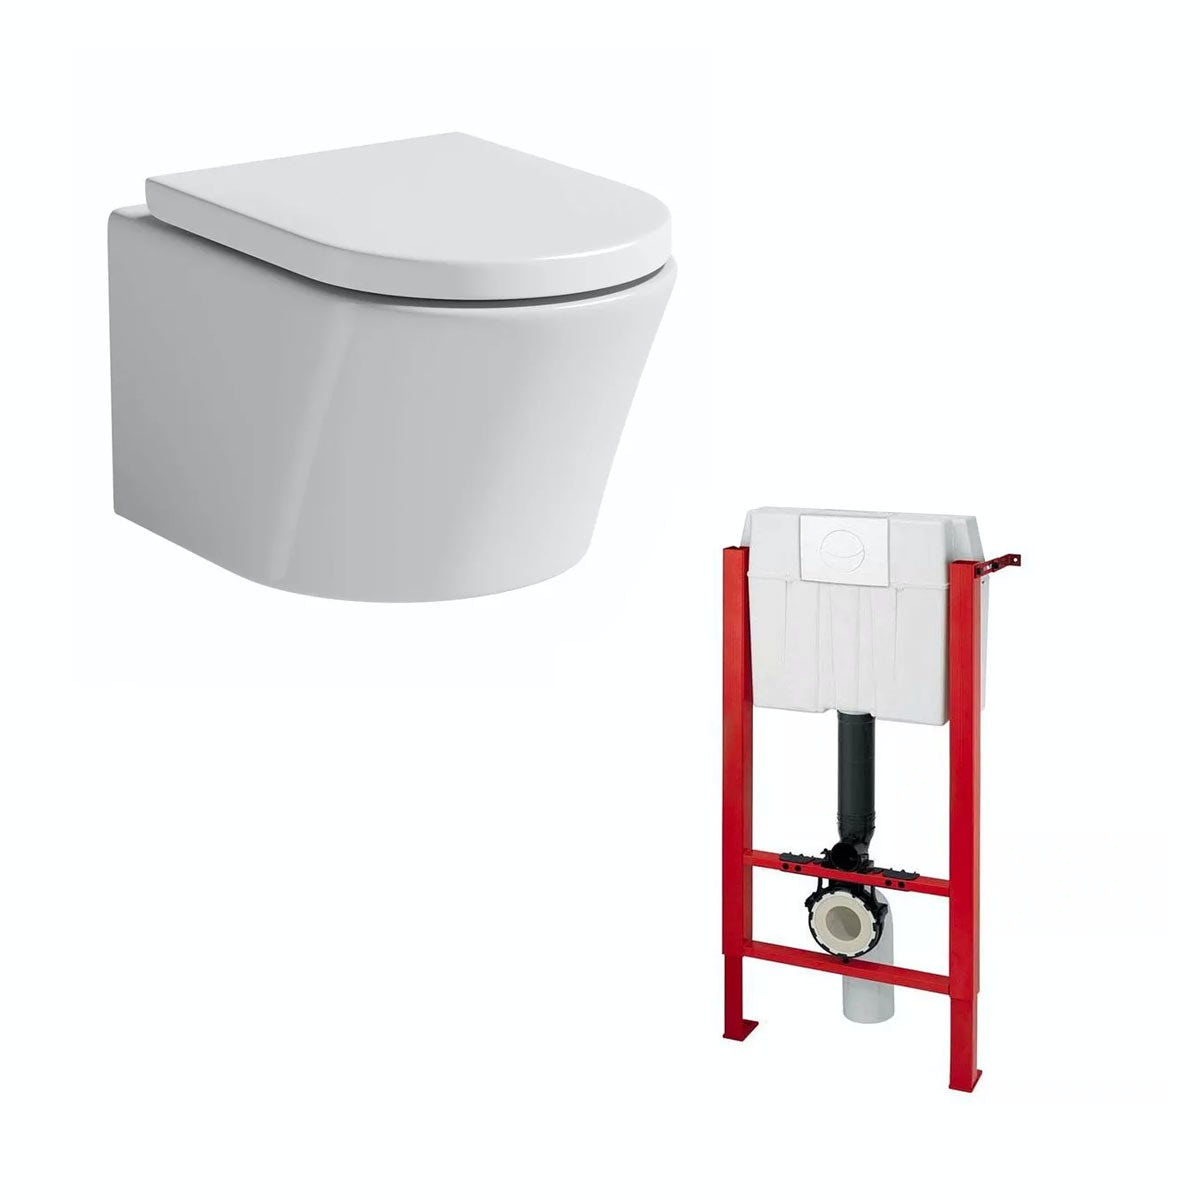 Mode Tate Wall Hung Toilet With Soft Close Seat And Wall